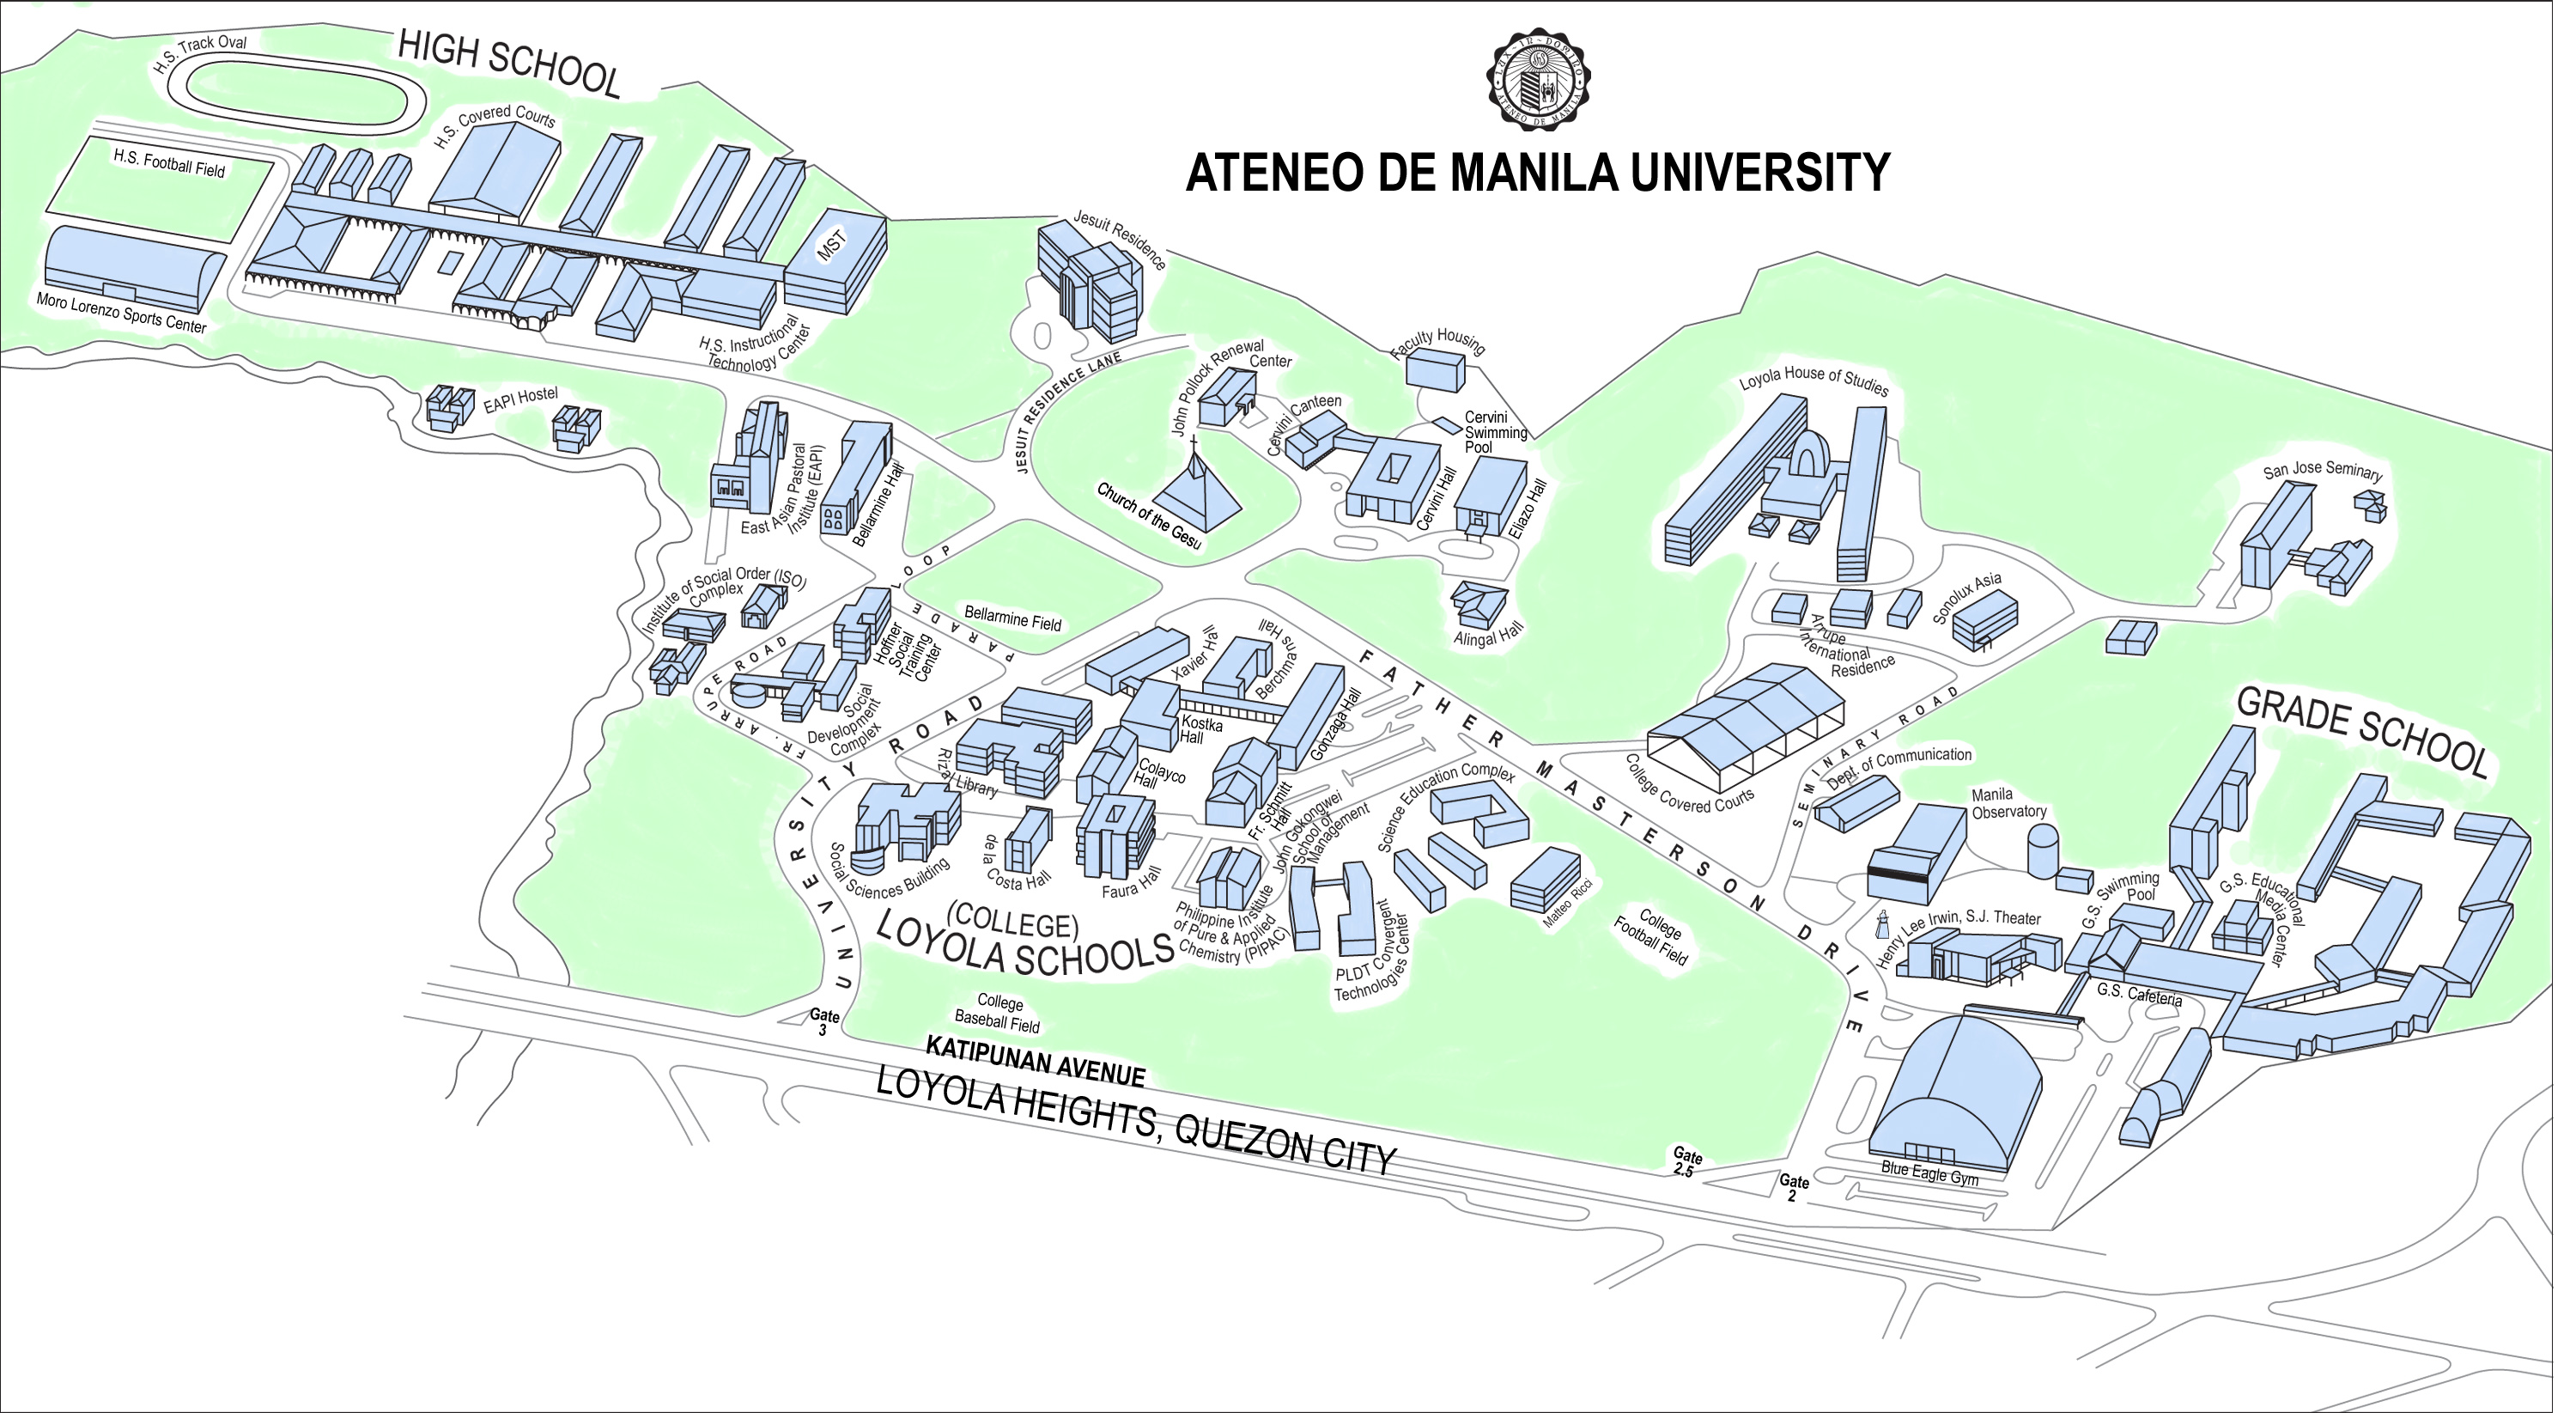 ateneo de manila campus map Ateneo De Manila University Loyola Heights Campus Map Katipunan ateneo de manila campus map